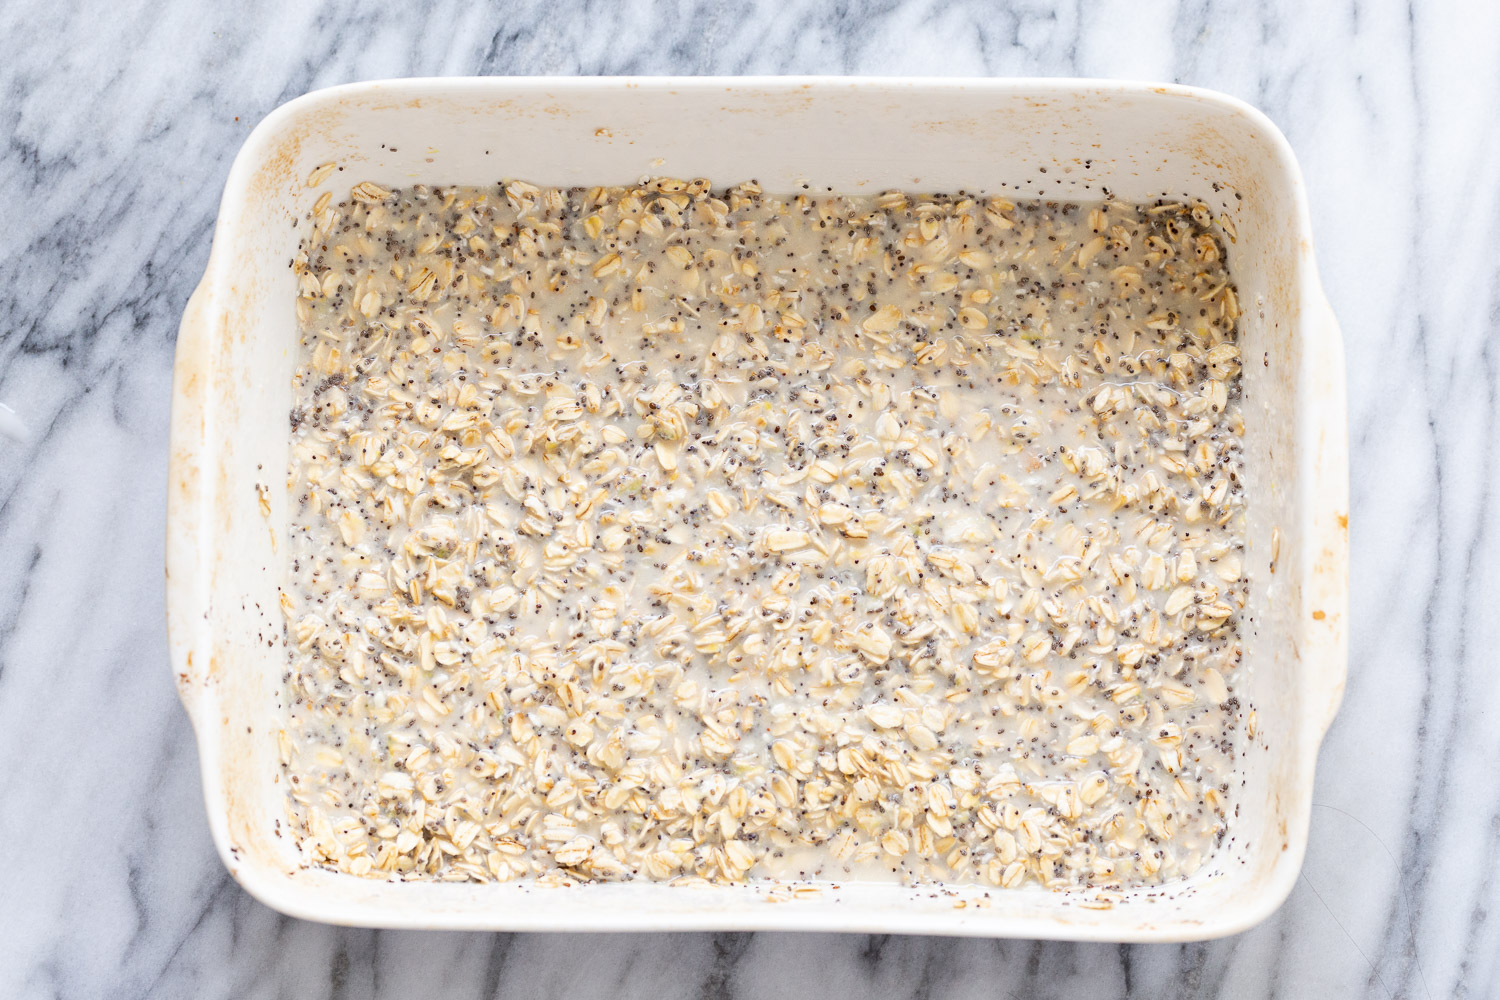 rolled oats and chia seeds being mixed with plant based milk to make baked oatmeal